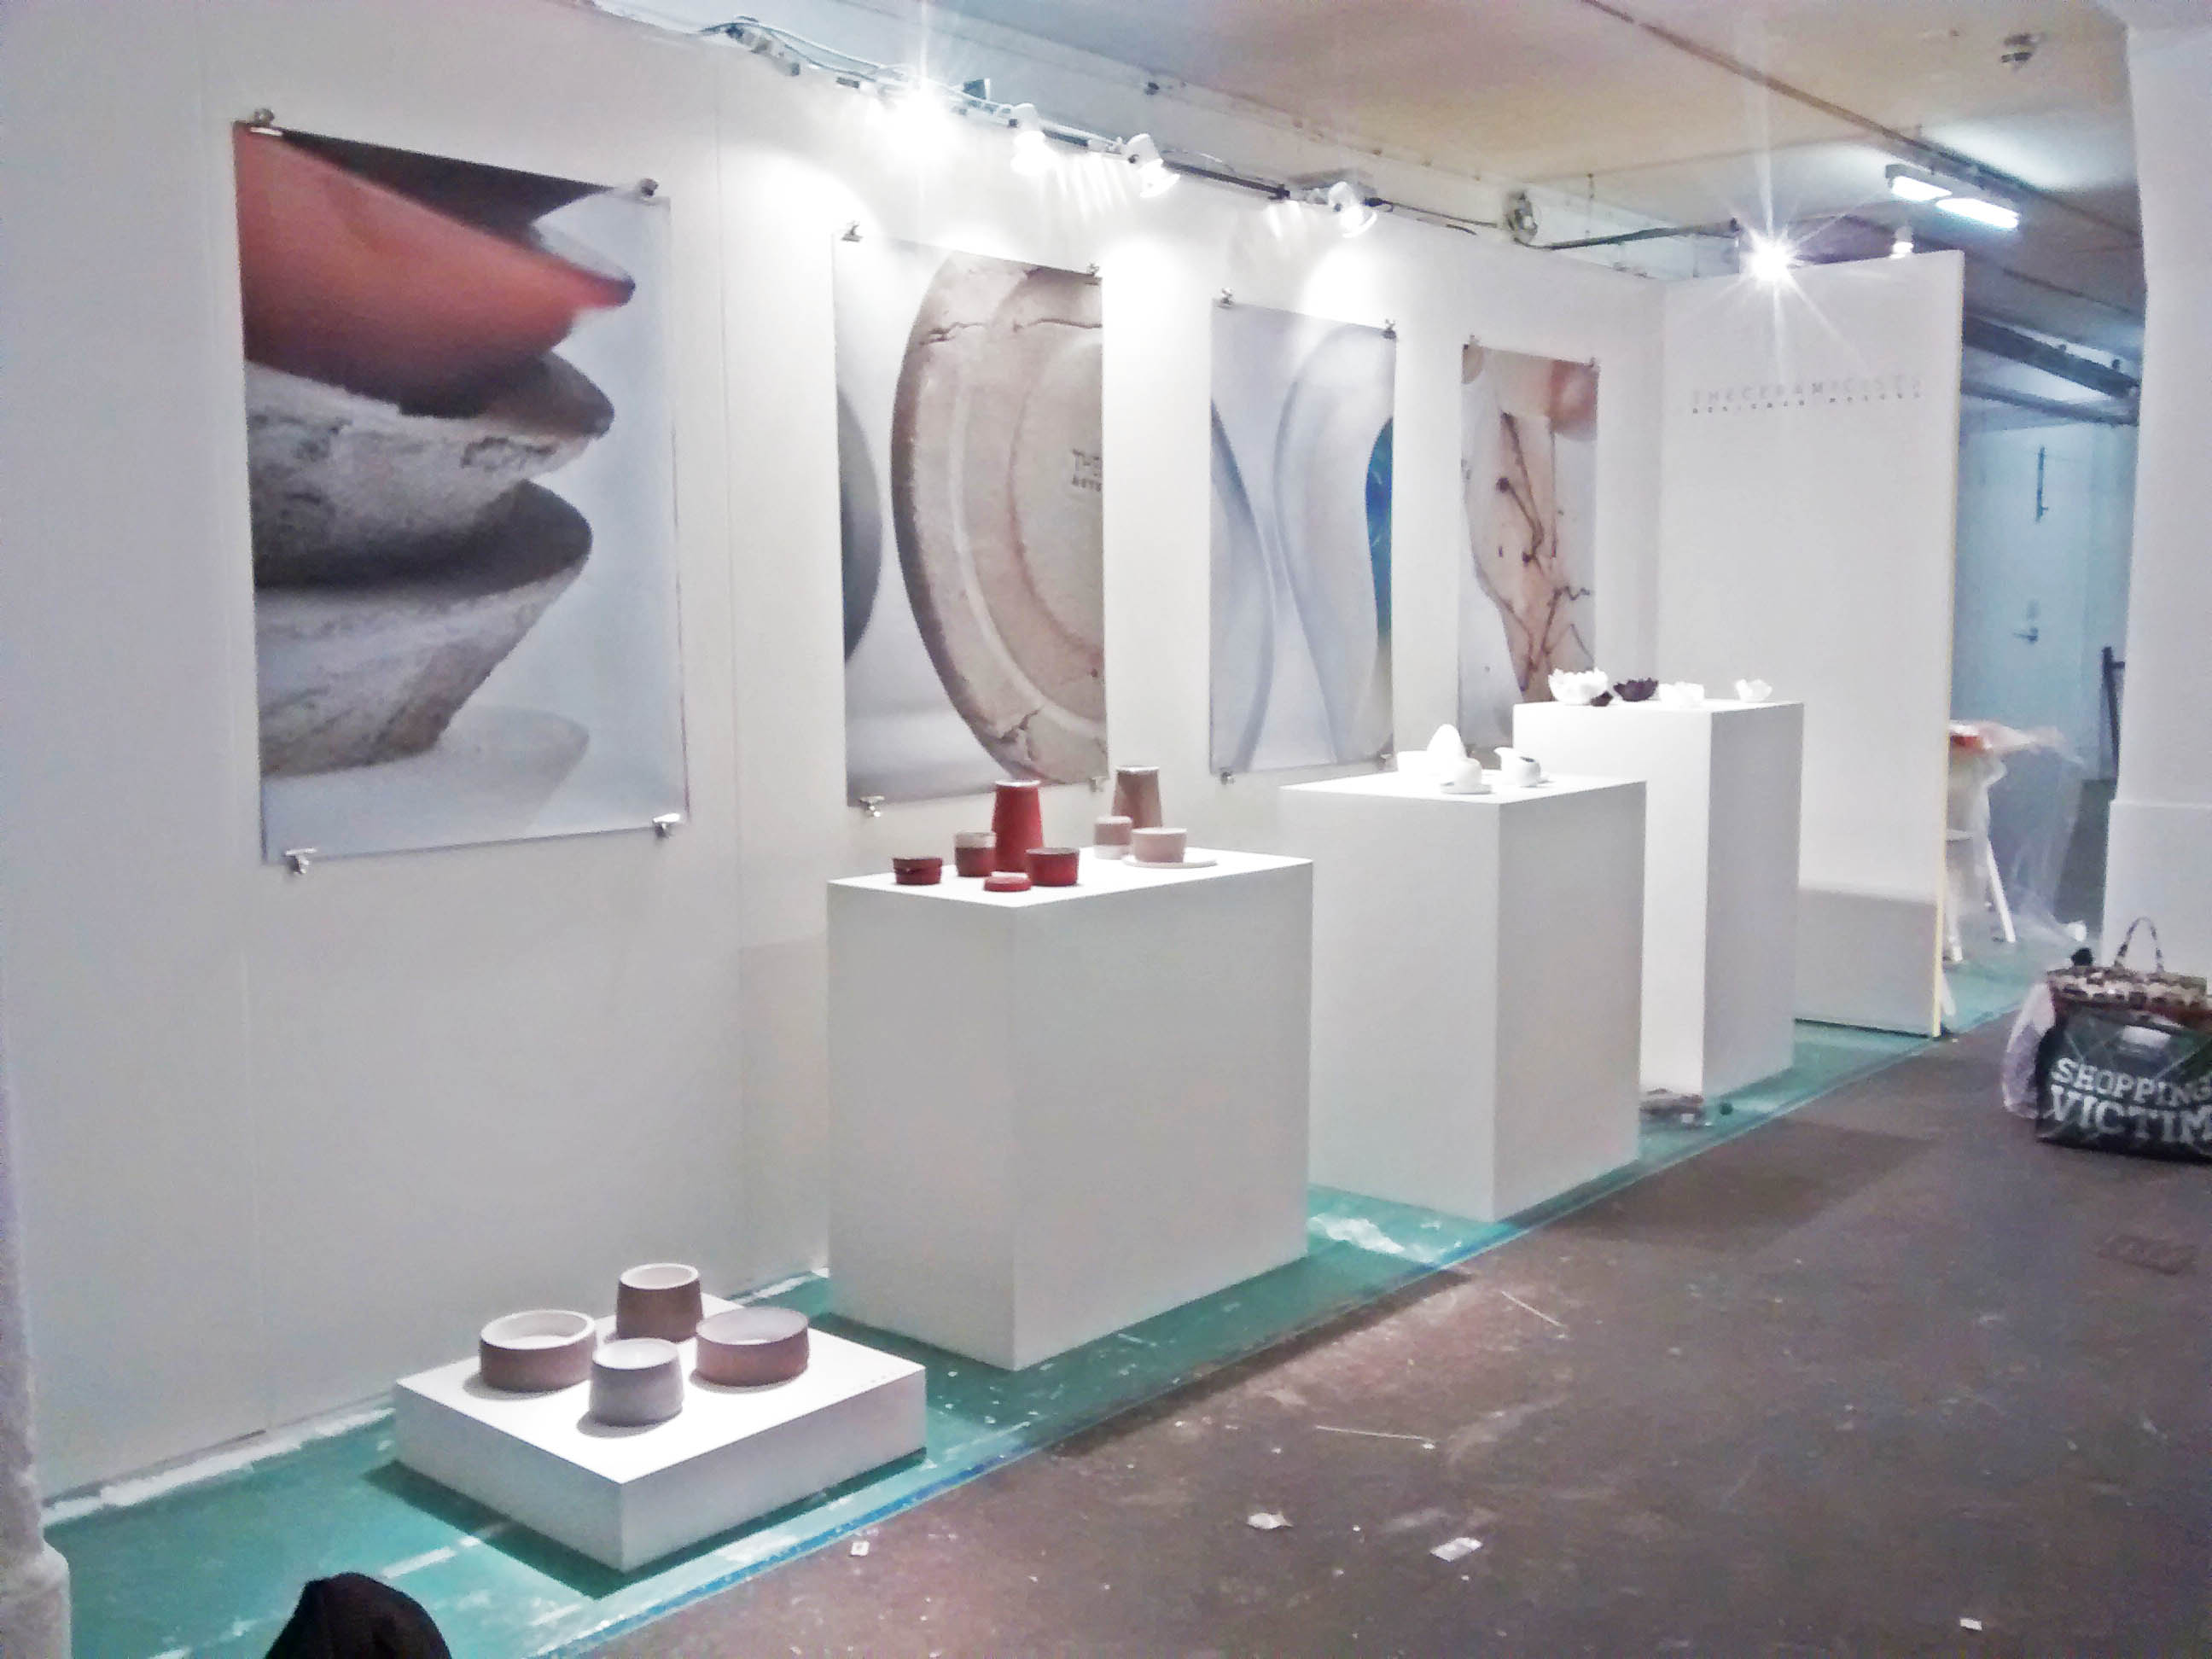 Showing at Tent London 15 & Showing at Tent London 15 « The Ceramicists